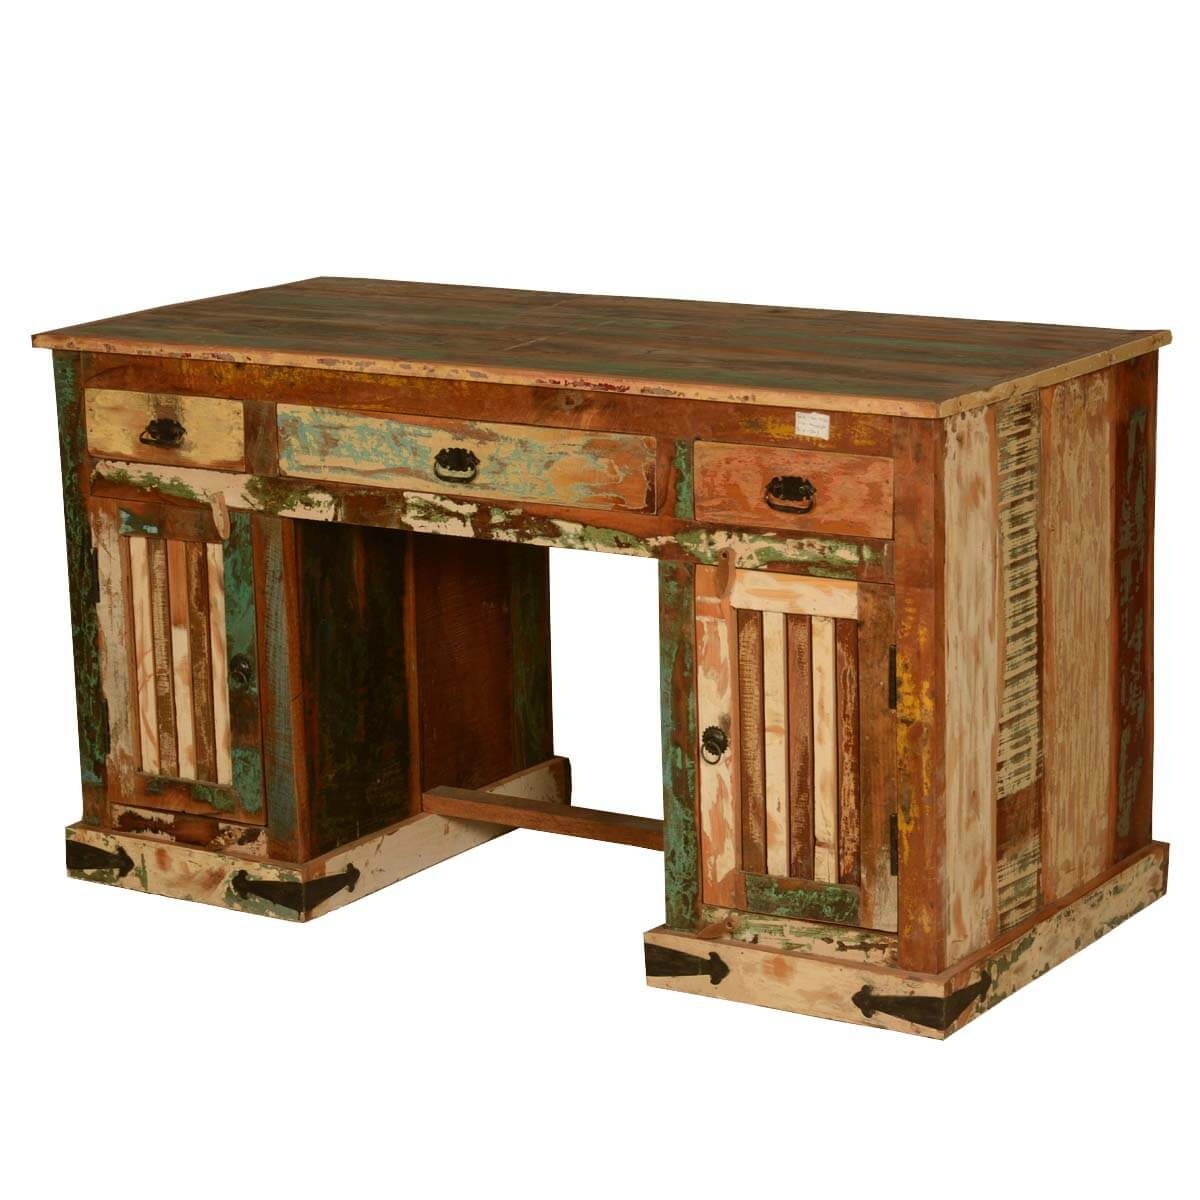 Gothic rustic double pedestal reclaimed wood office desk - Wood office desk ...